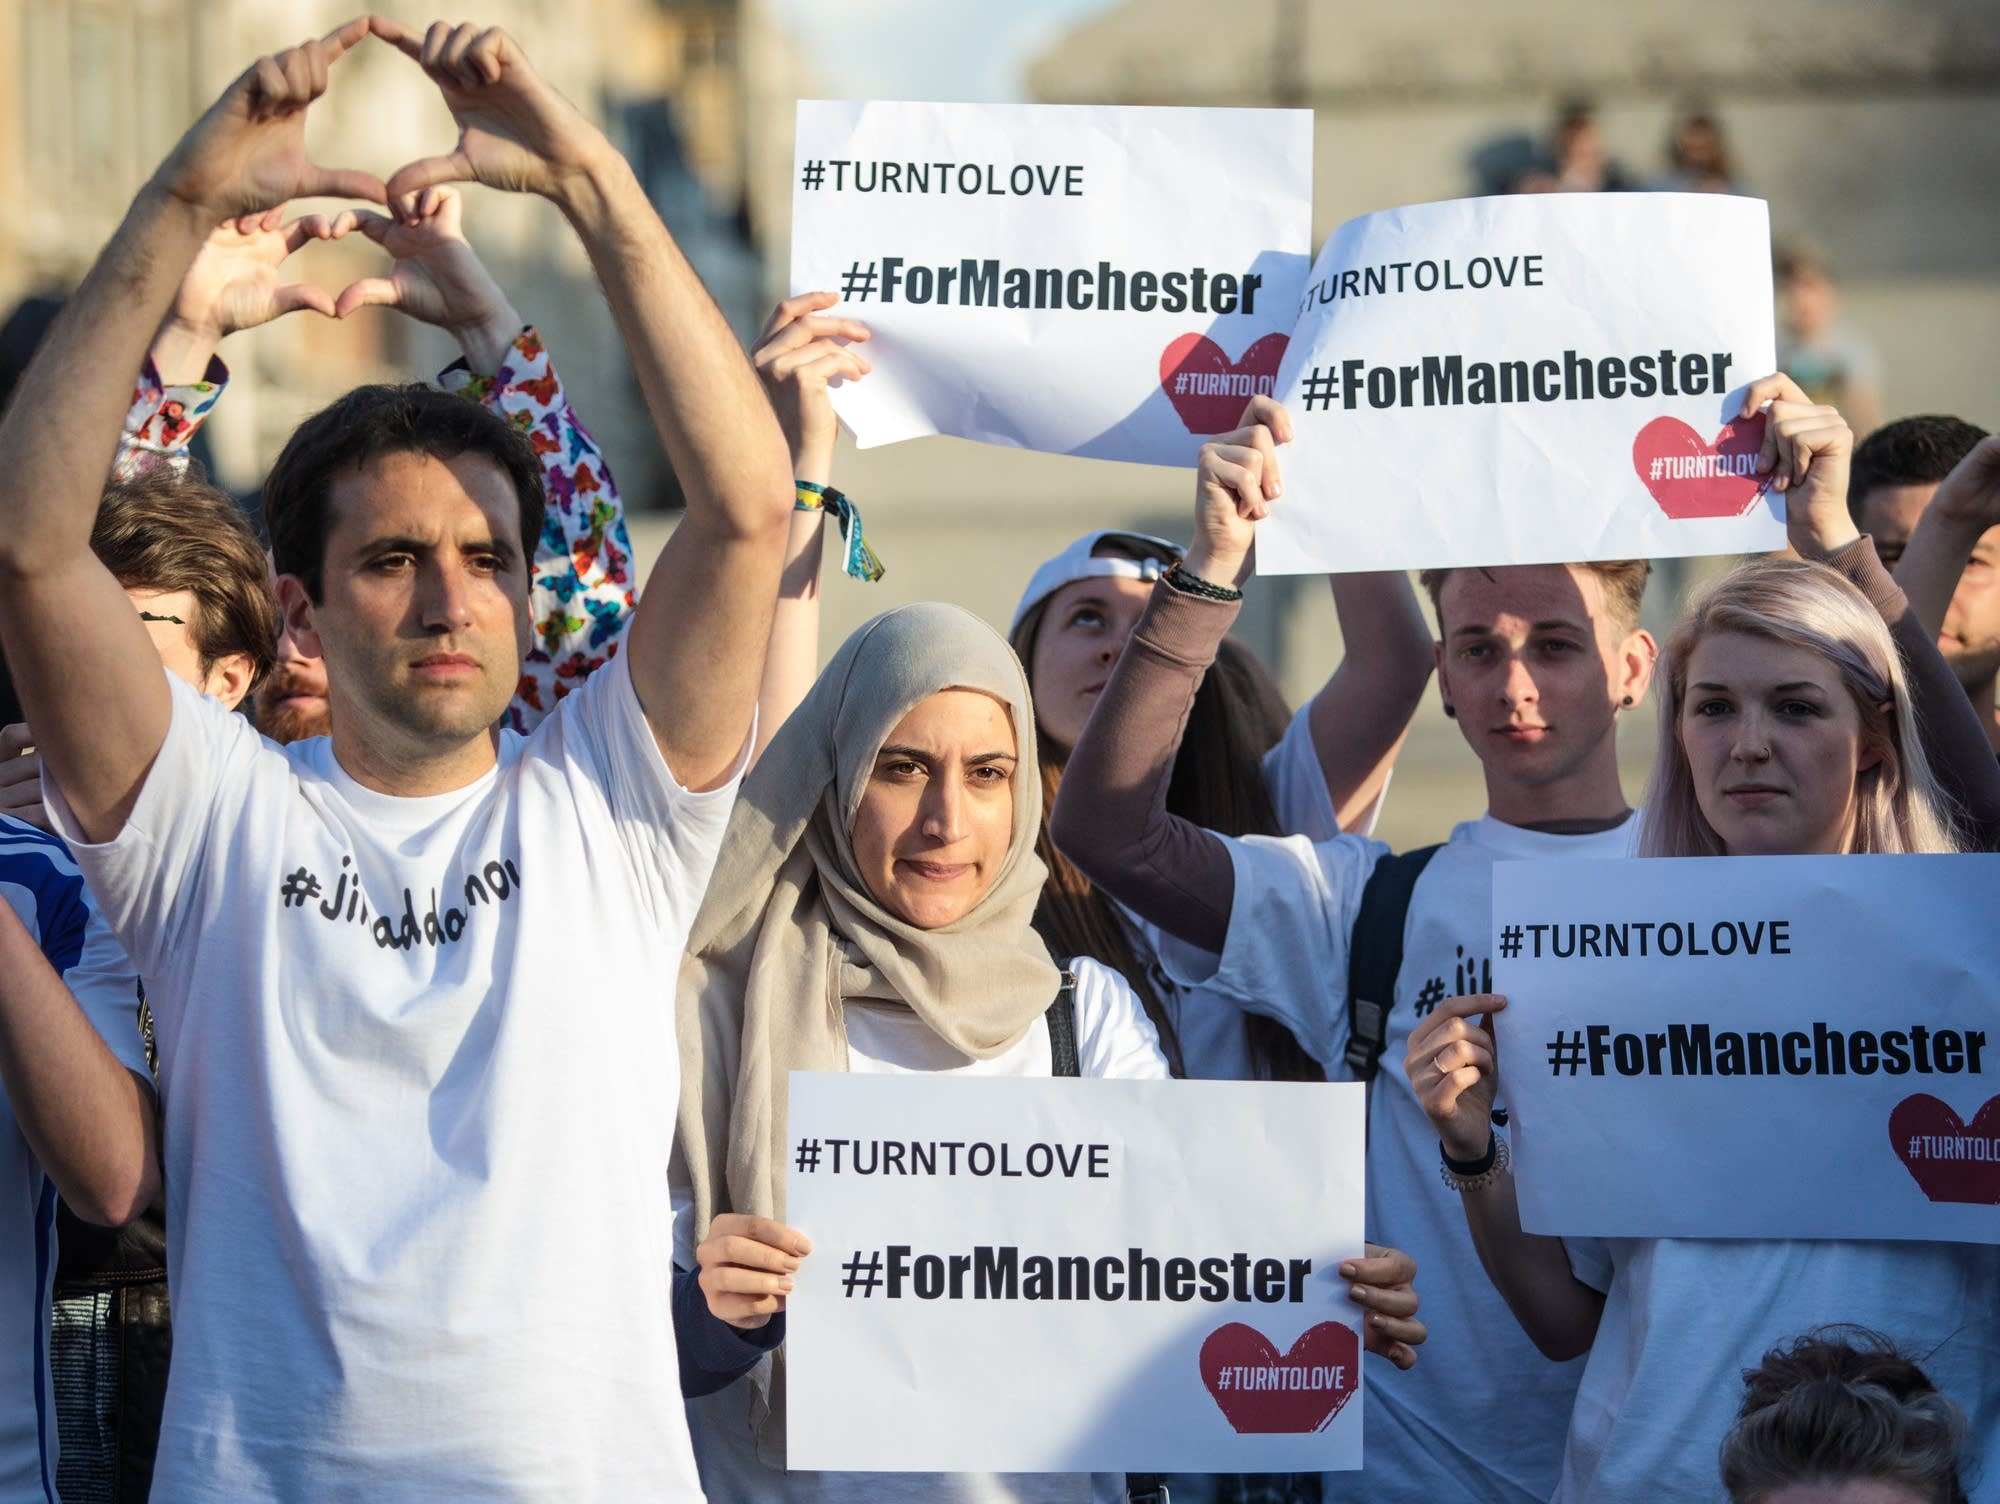 A vigil in Manchester, England on May 23, 2017